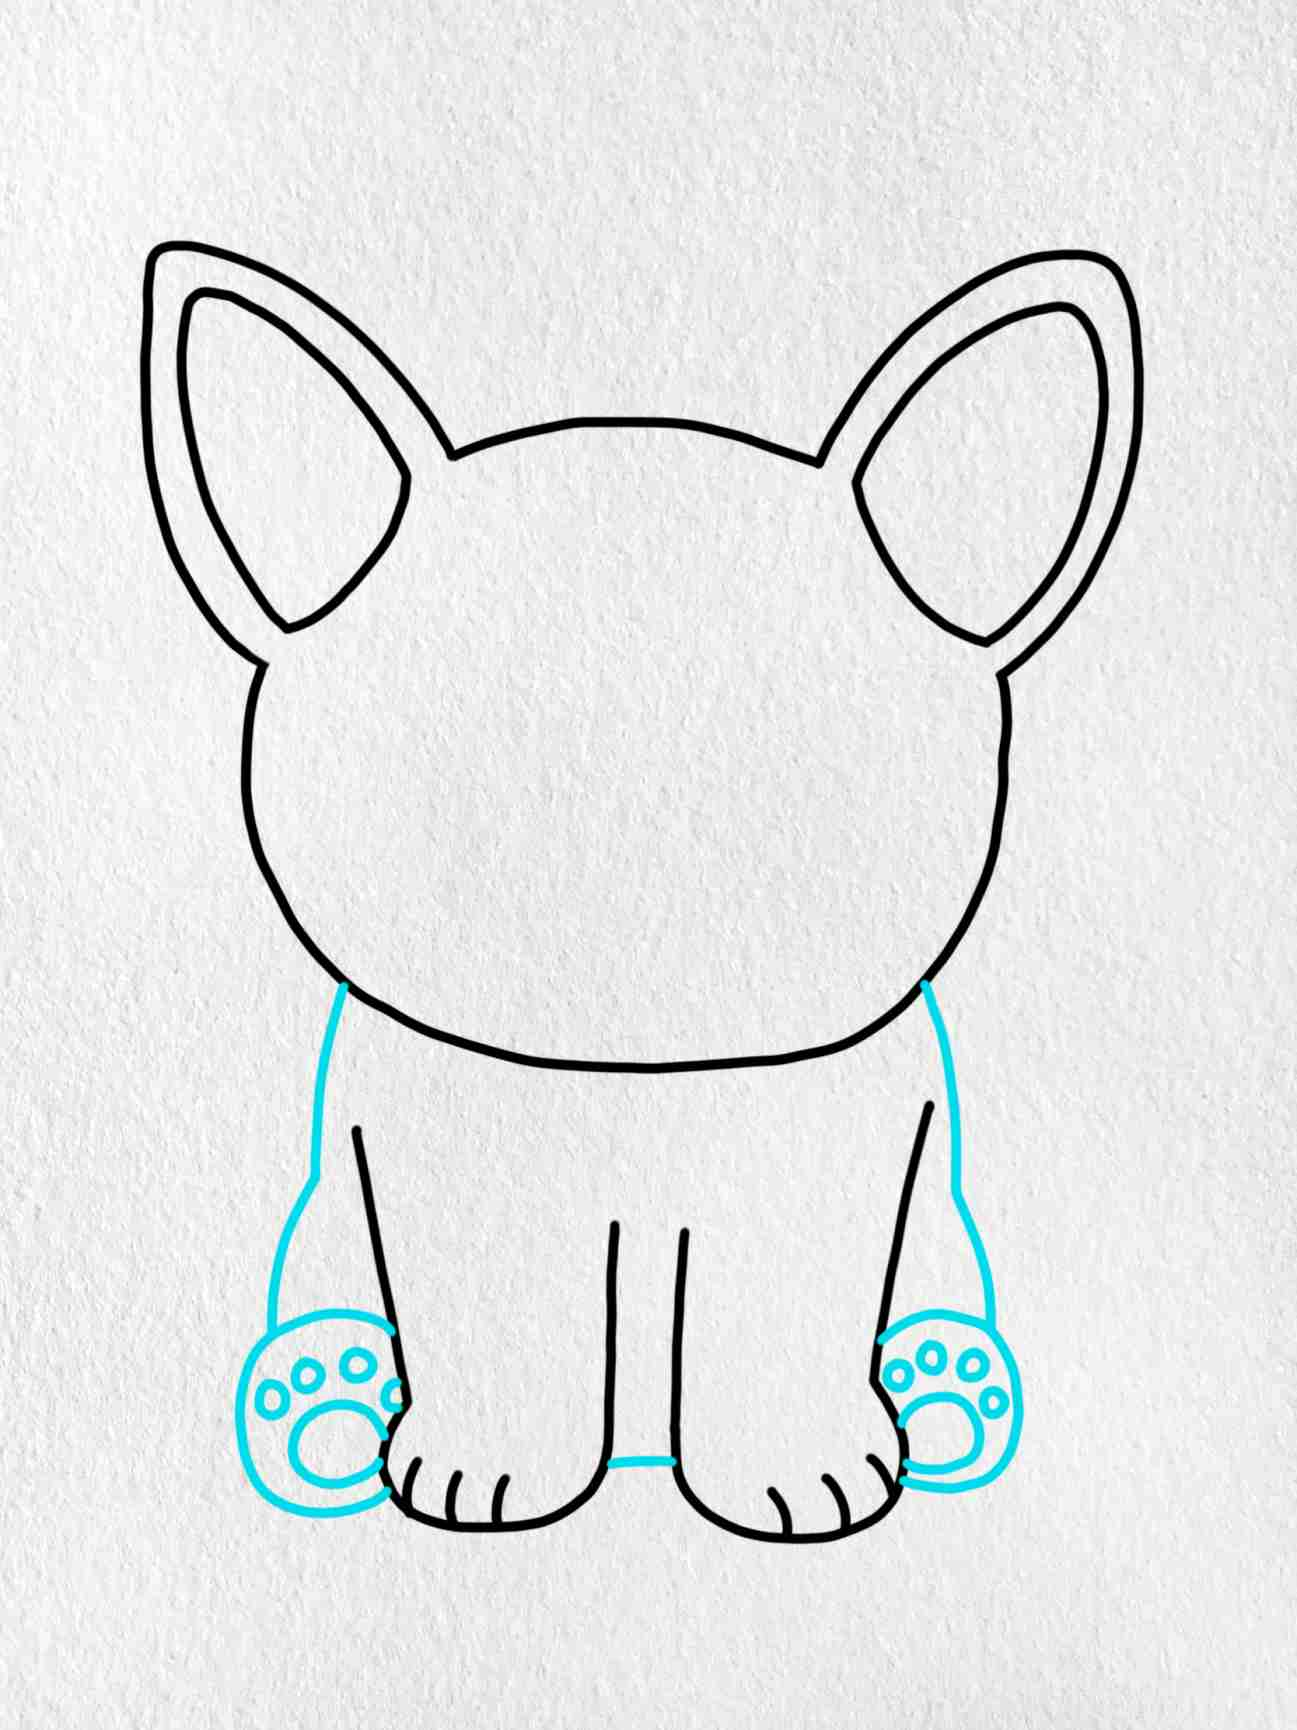 How To Draw A French Bulldog: Step 4